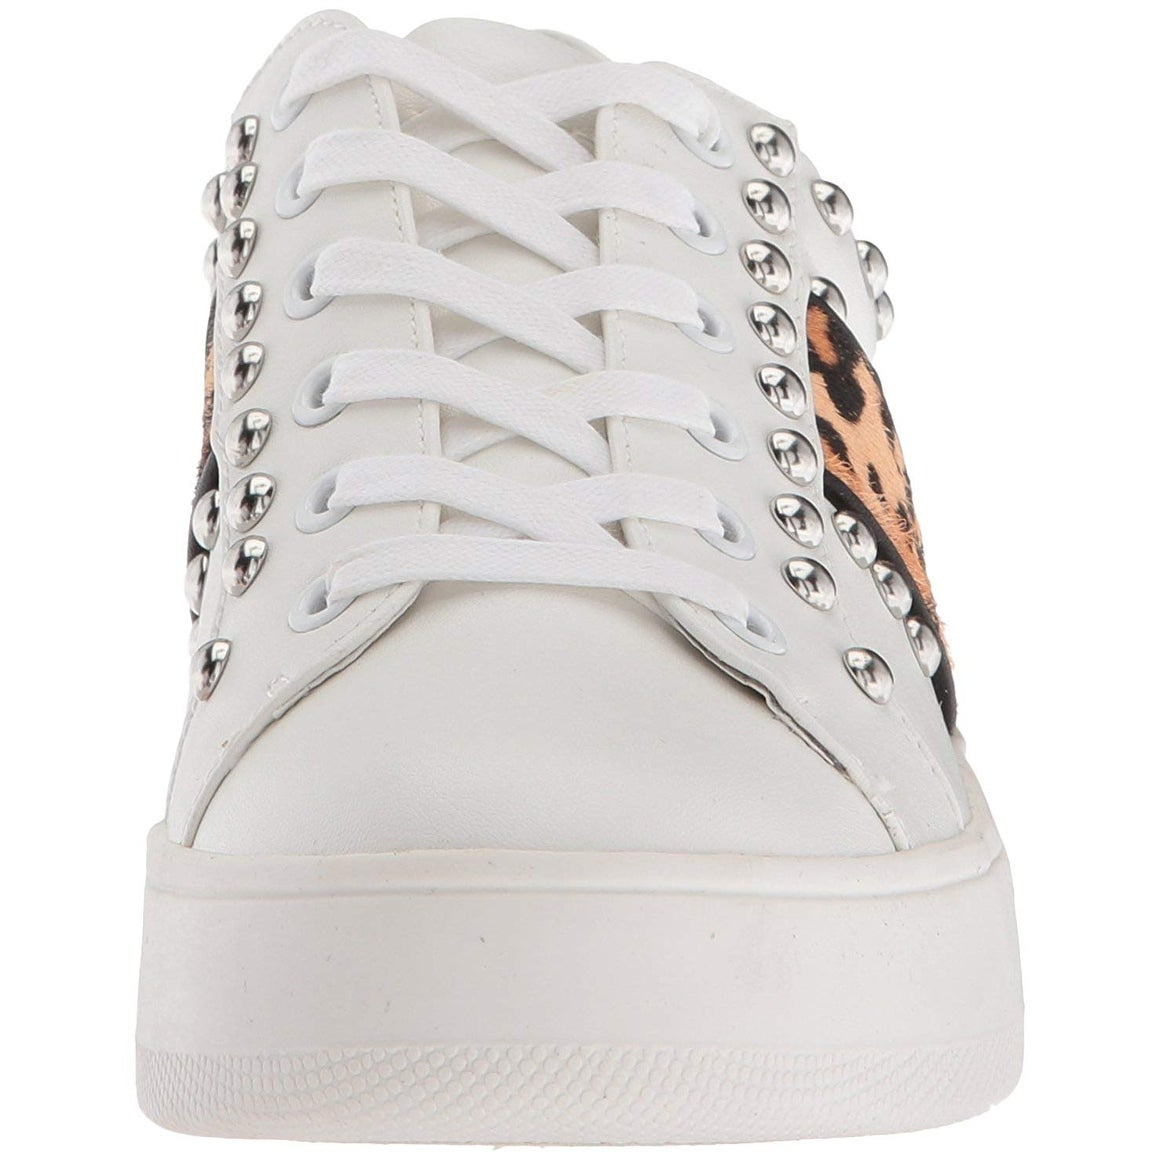 ba5d549a829 Shop Steve Madden Womens Belle Leather Low Top Lace Up Fashion Sneakers -  Free Shipping Today - Overstock - 22319841